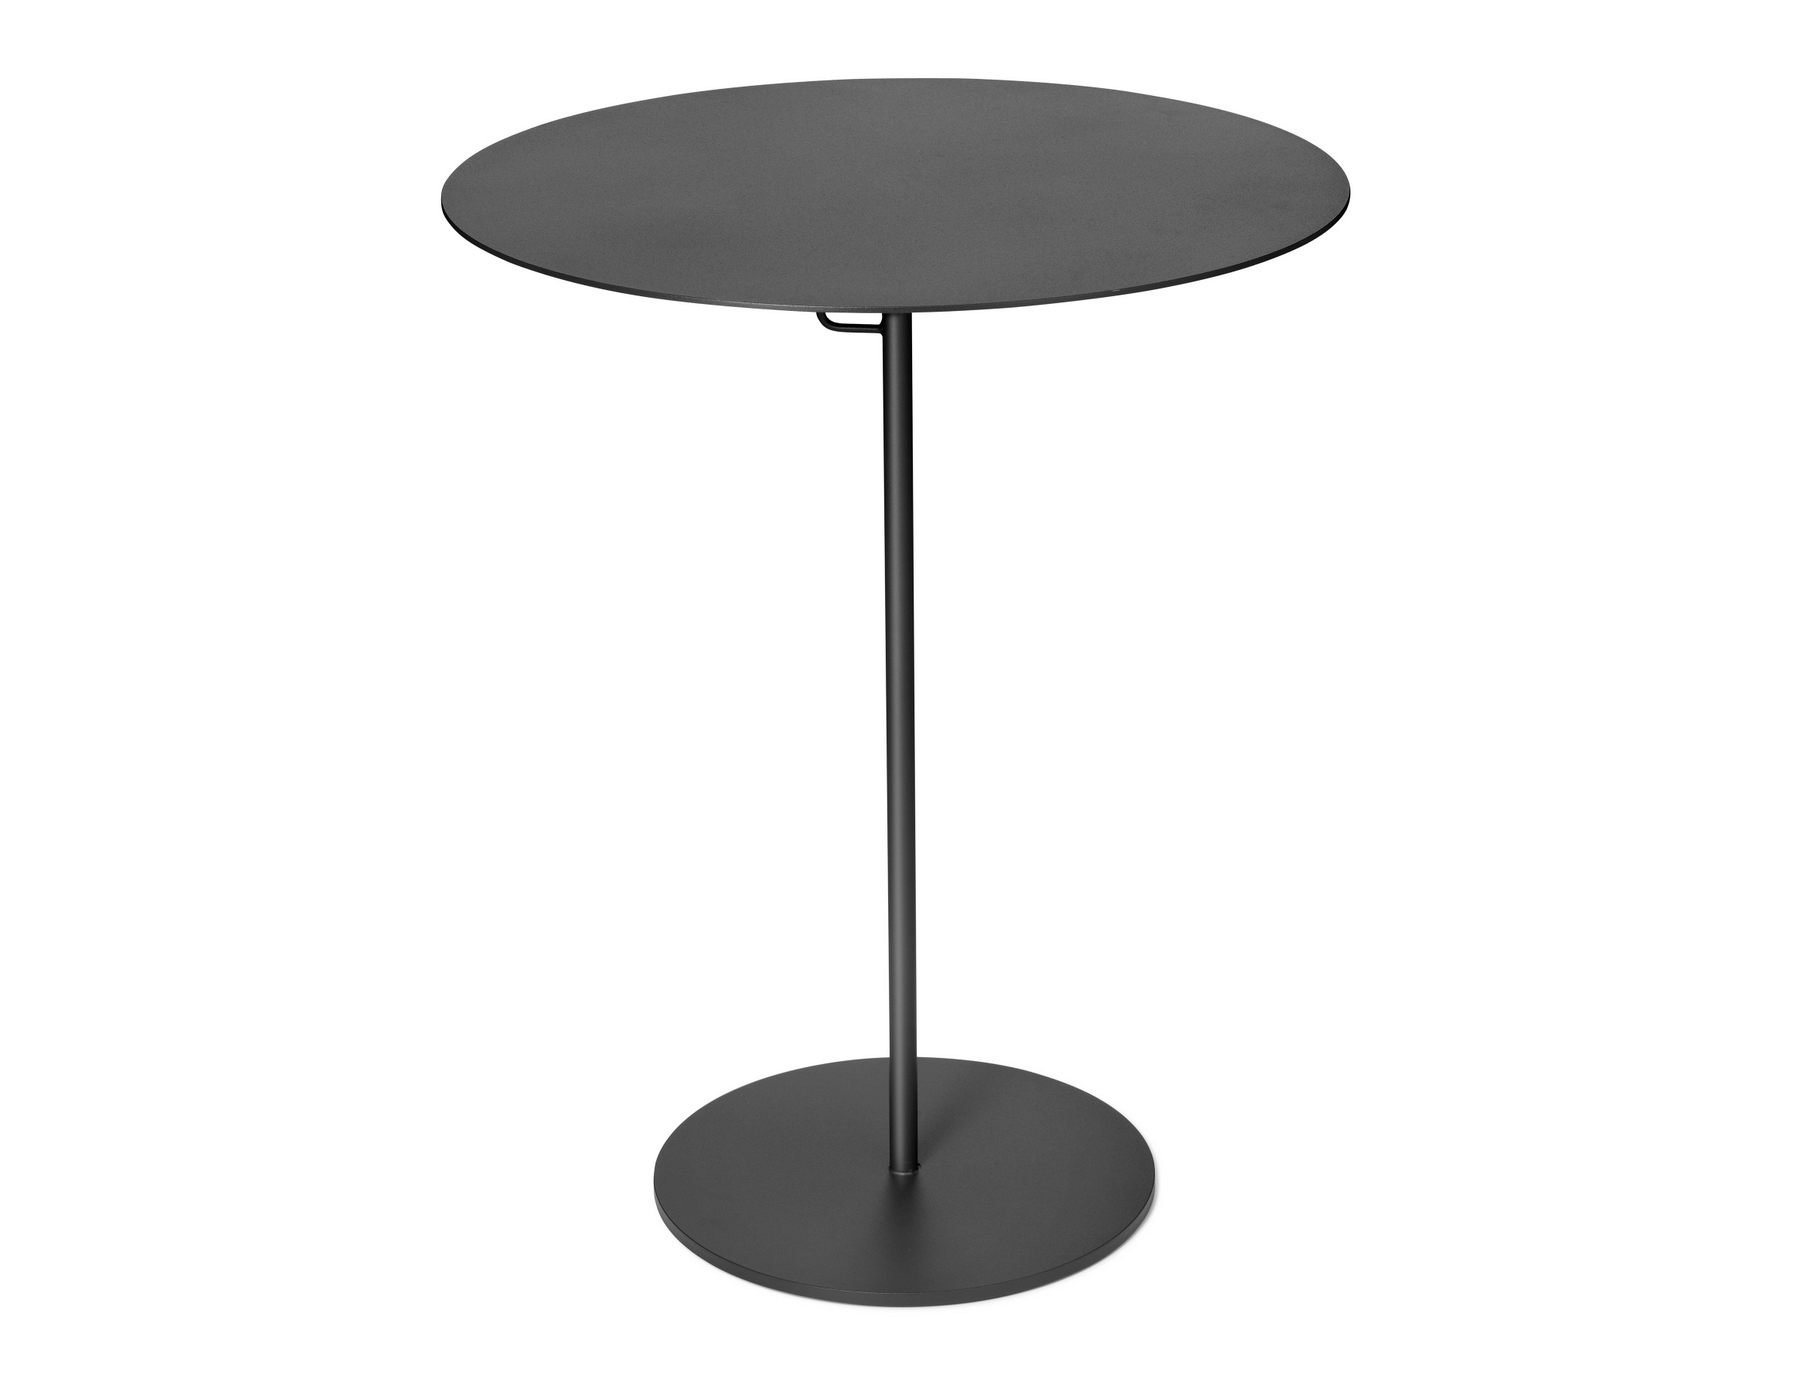 table haute rond en acier kyparn table d 39 appoint de jardin collection kyparn by nola. Black Bedroom Furniture Sets. Home Design Ideas